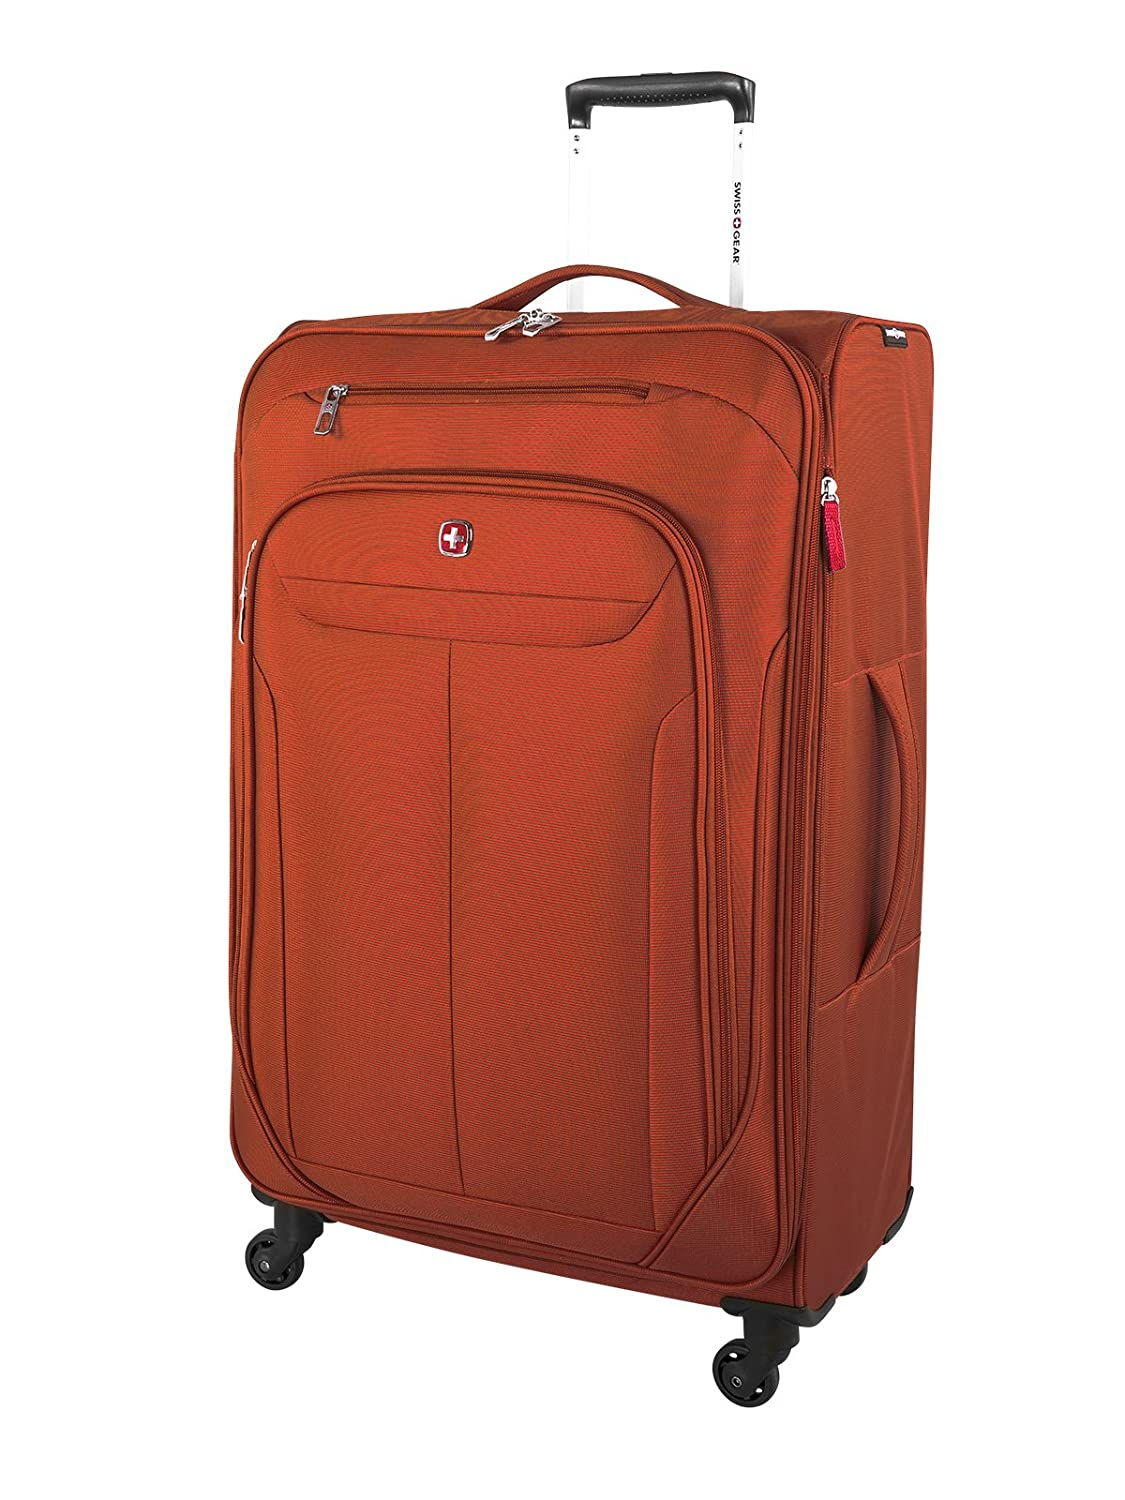 Swiss Gear Marumo Carry-On Luggage 19-Inch, Teal, International Carry-On (Model:SW12769029) TP-HOLIDAY GROUP LIMITED